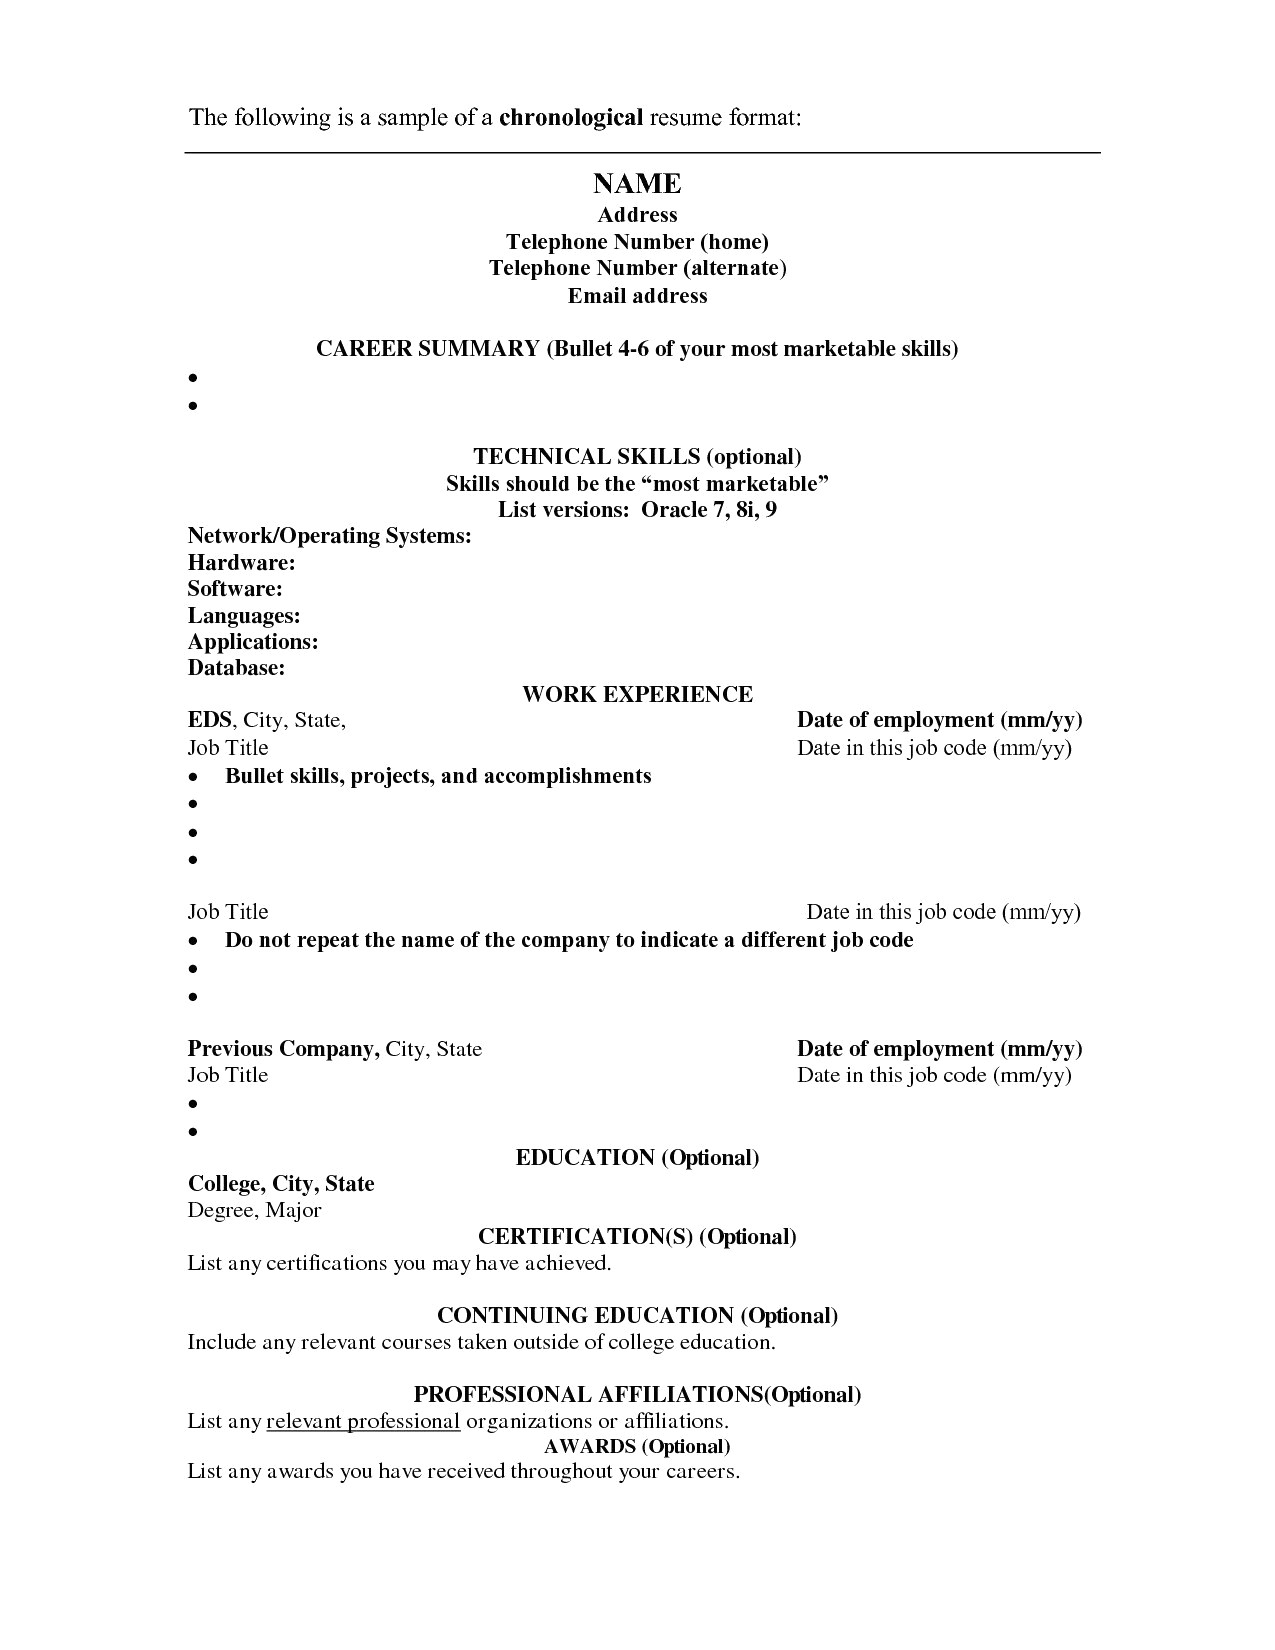 Job Title In Resume - 36 Fresh Cover Letter and Resume